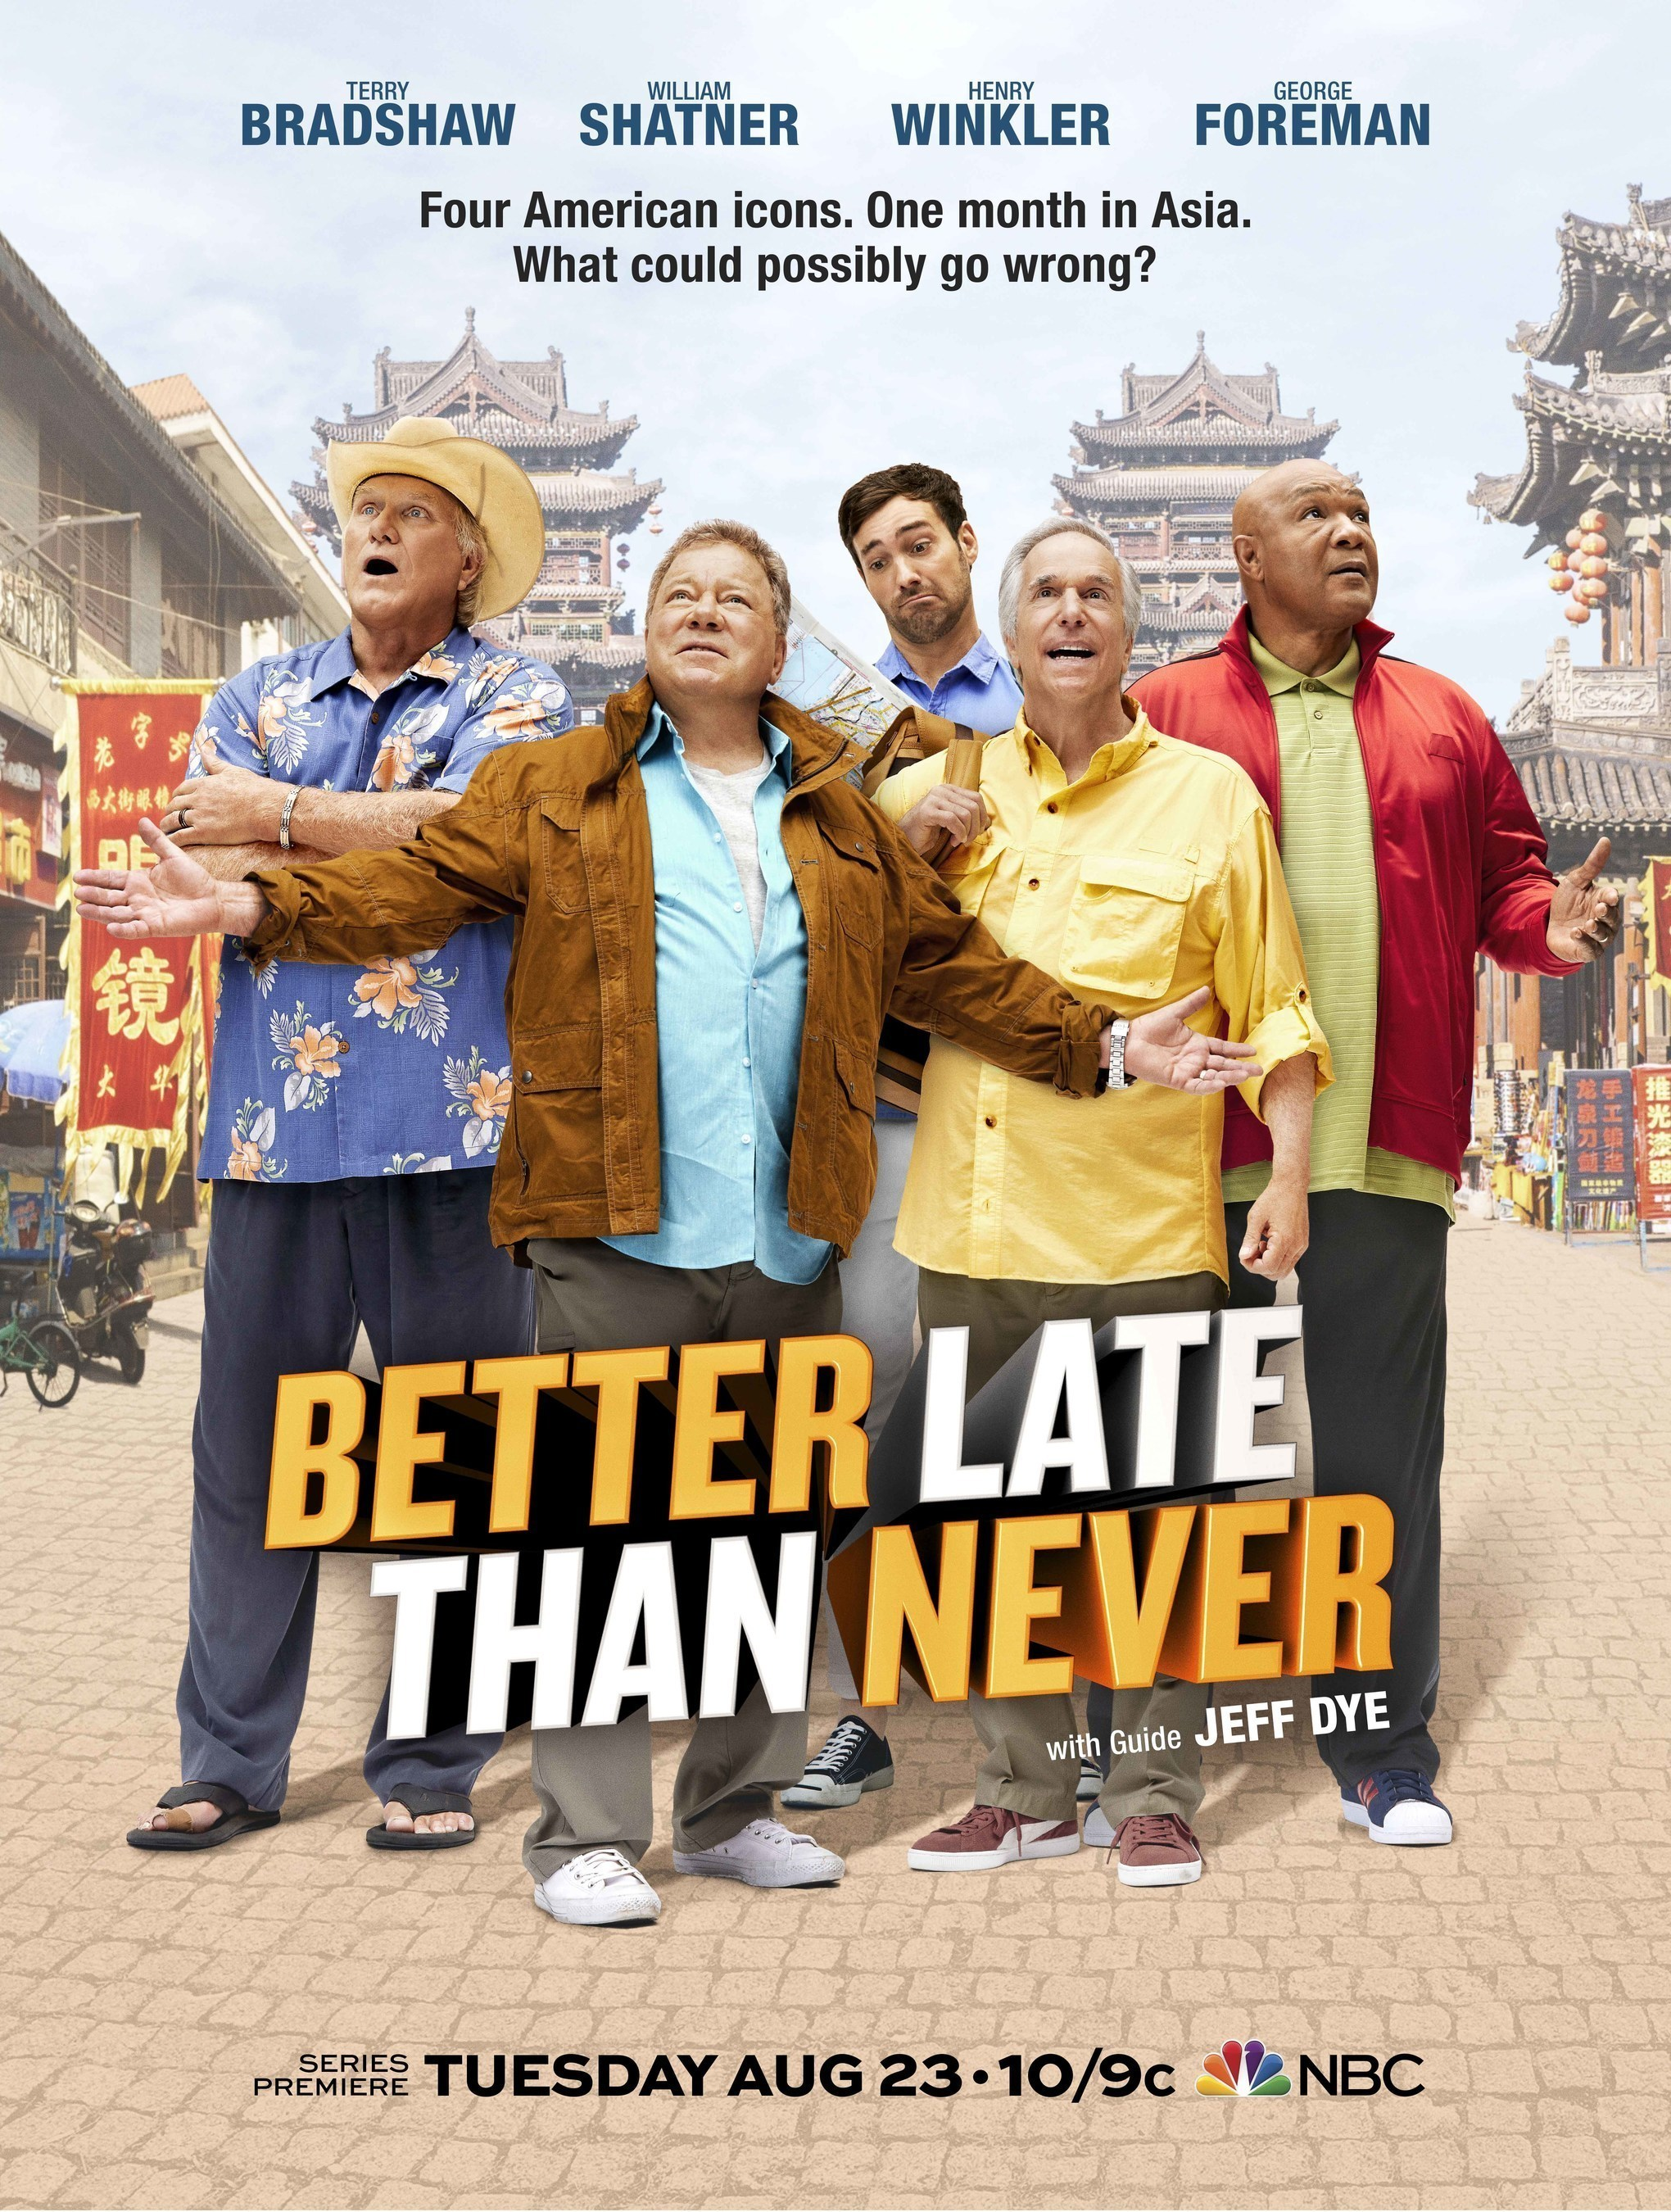 Hong Kong To Star In New NBC TV Show 'Better Late Than Never'